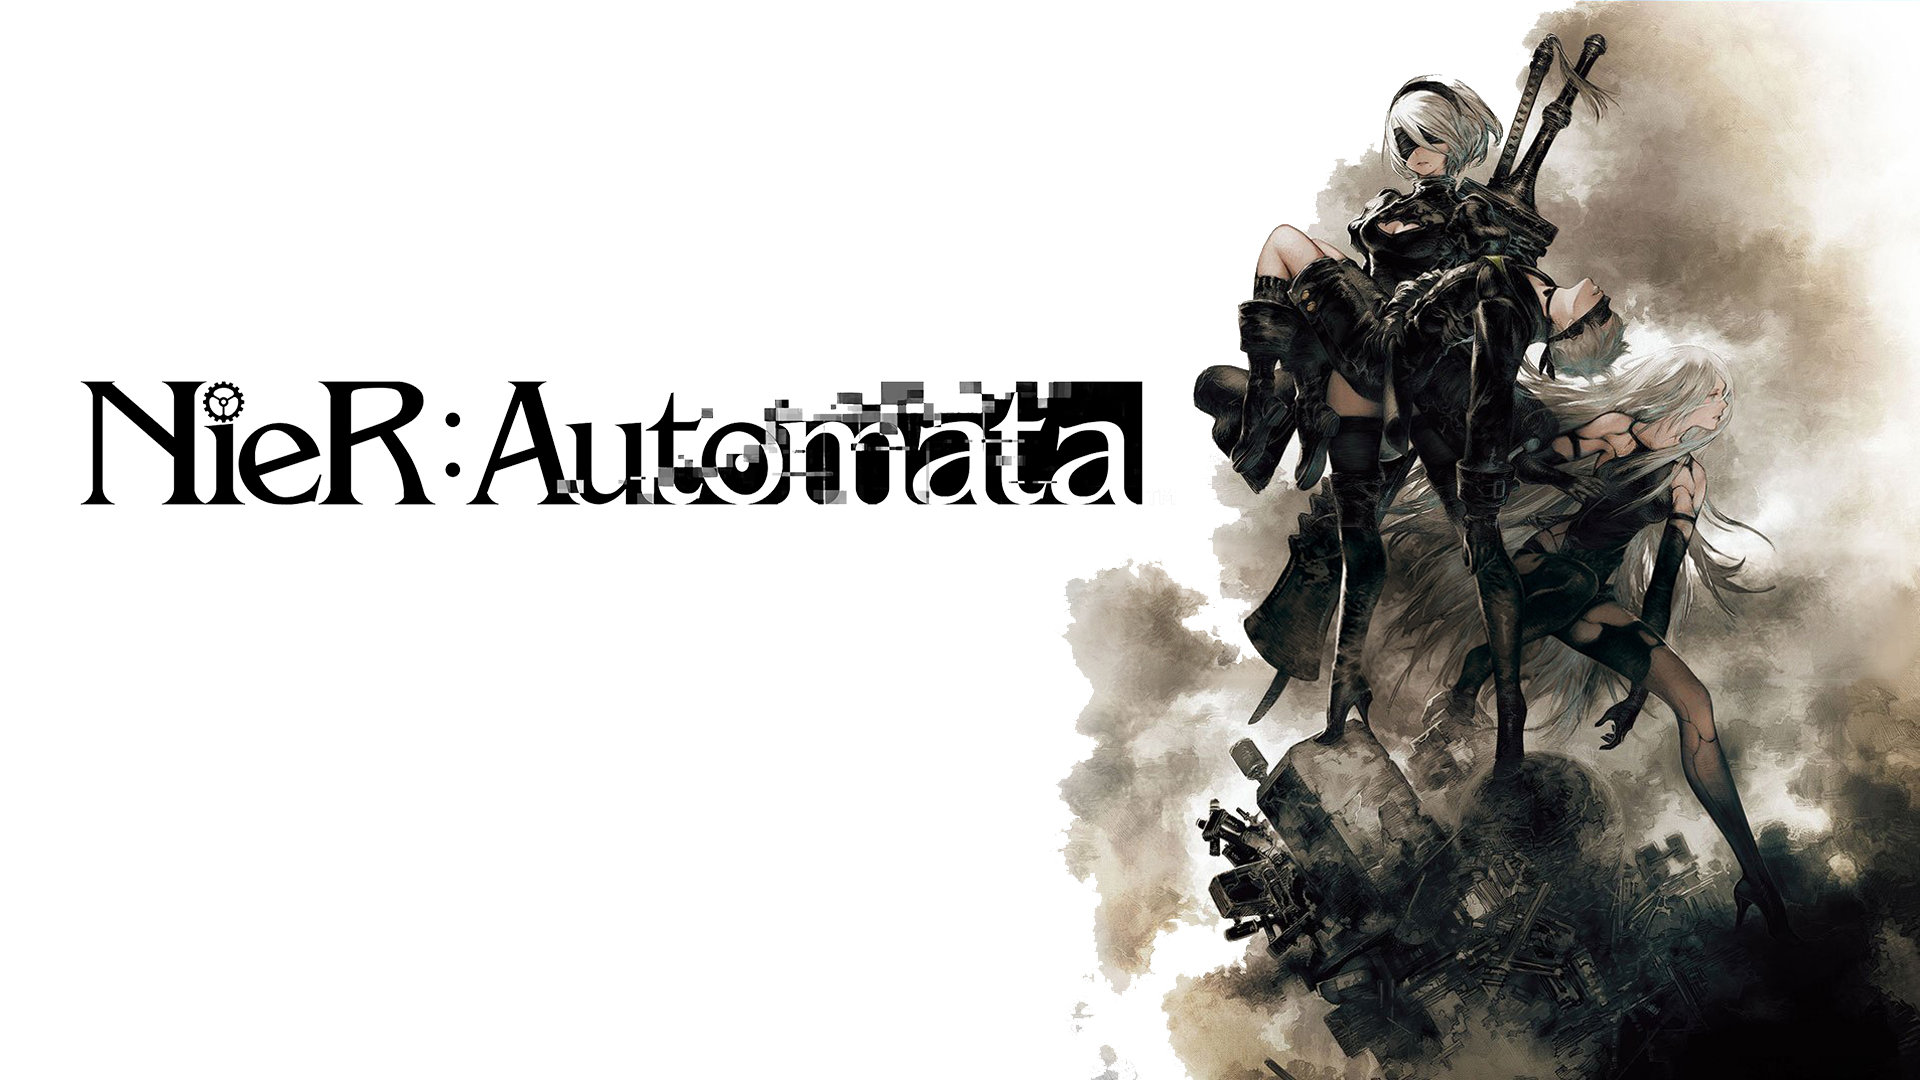 Nier Automata Wallpapers 1920x1080 Full Hd 1080p Desktop Backgrounds